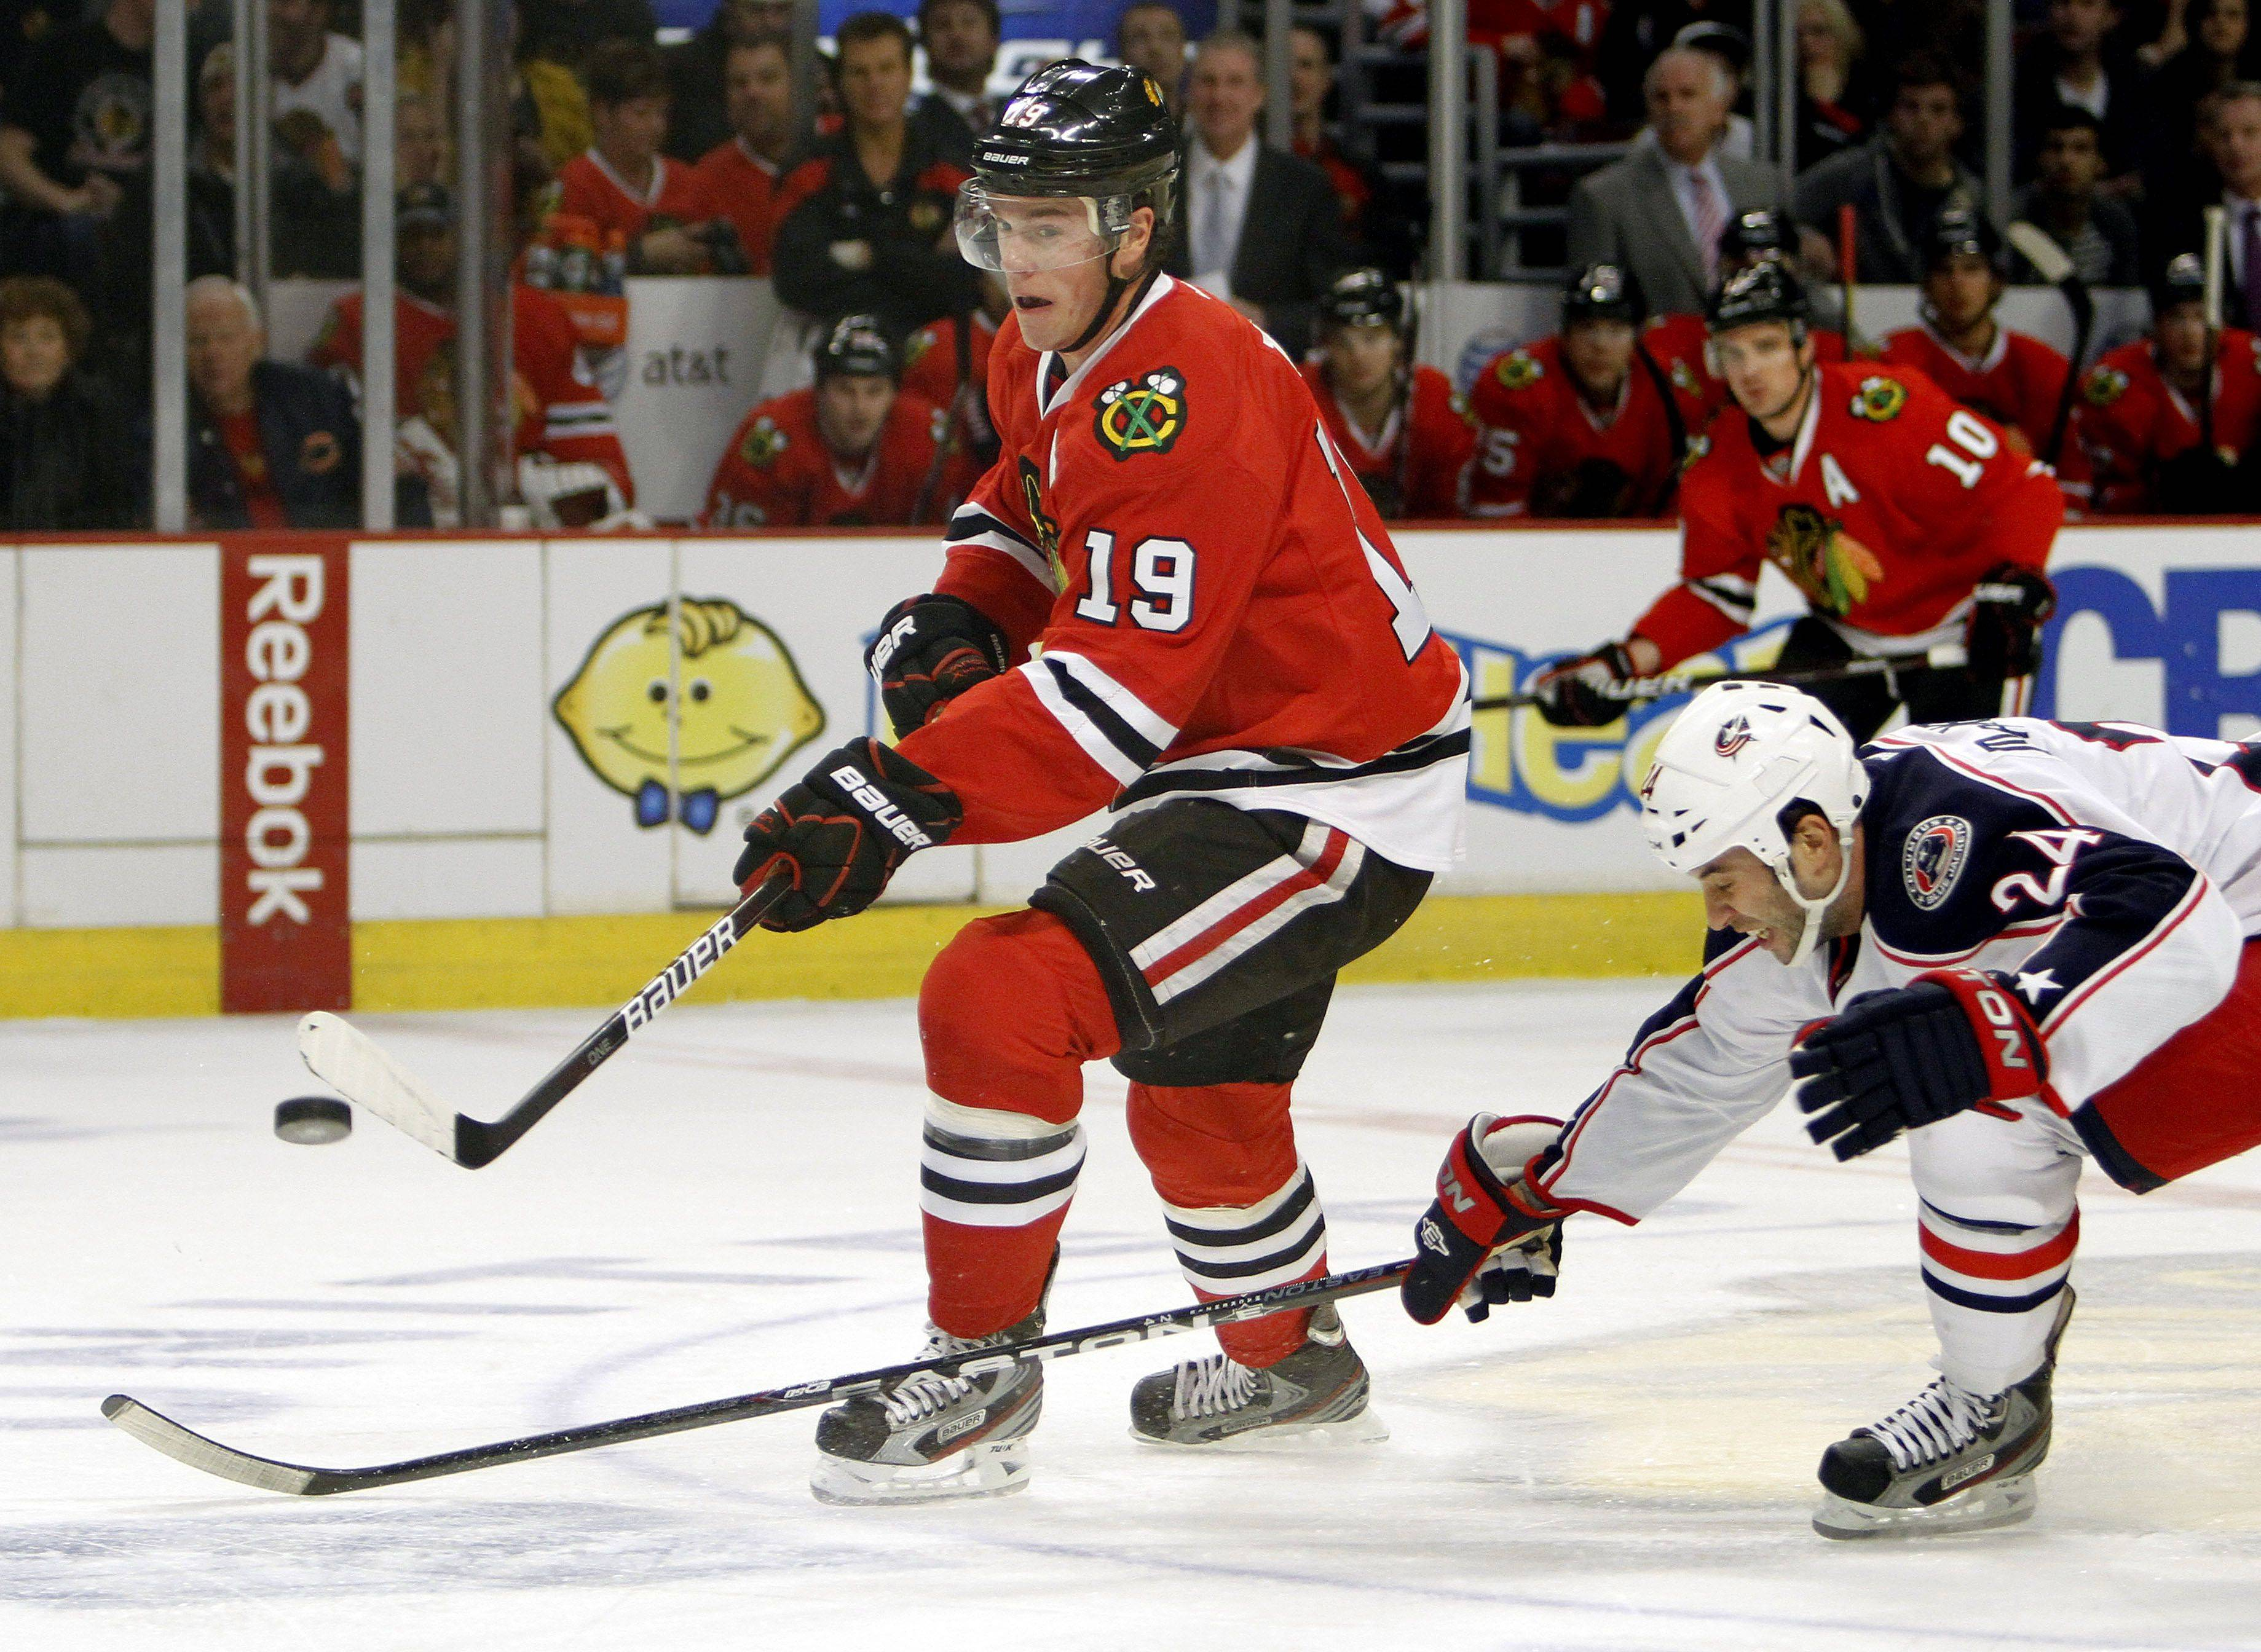 Chicago Blackhawks center Jonathan Toews drives past Columbus Blue Jackets center Derek MacKenzie during their game Monday night at the United Center in Chicago.